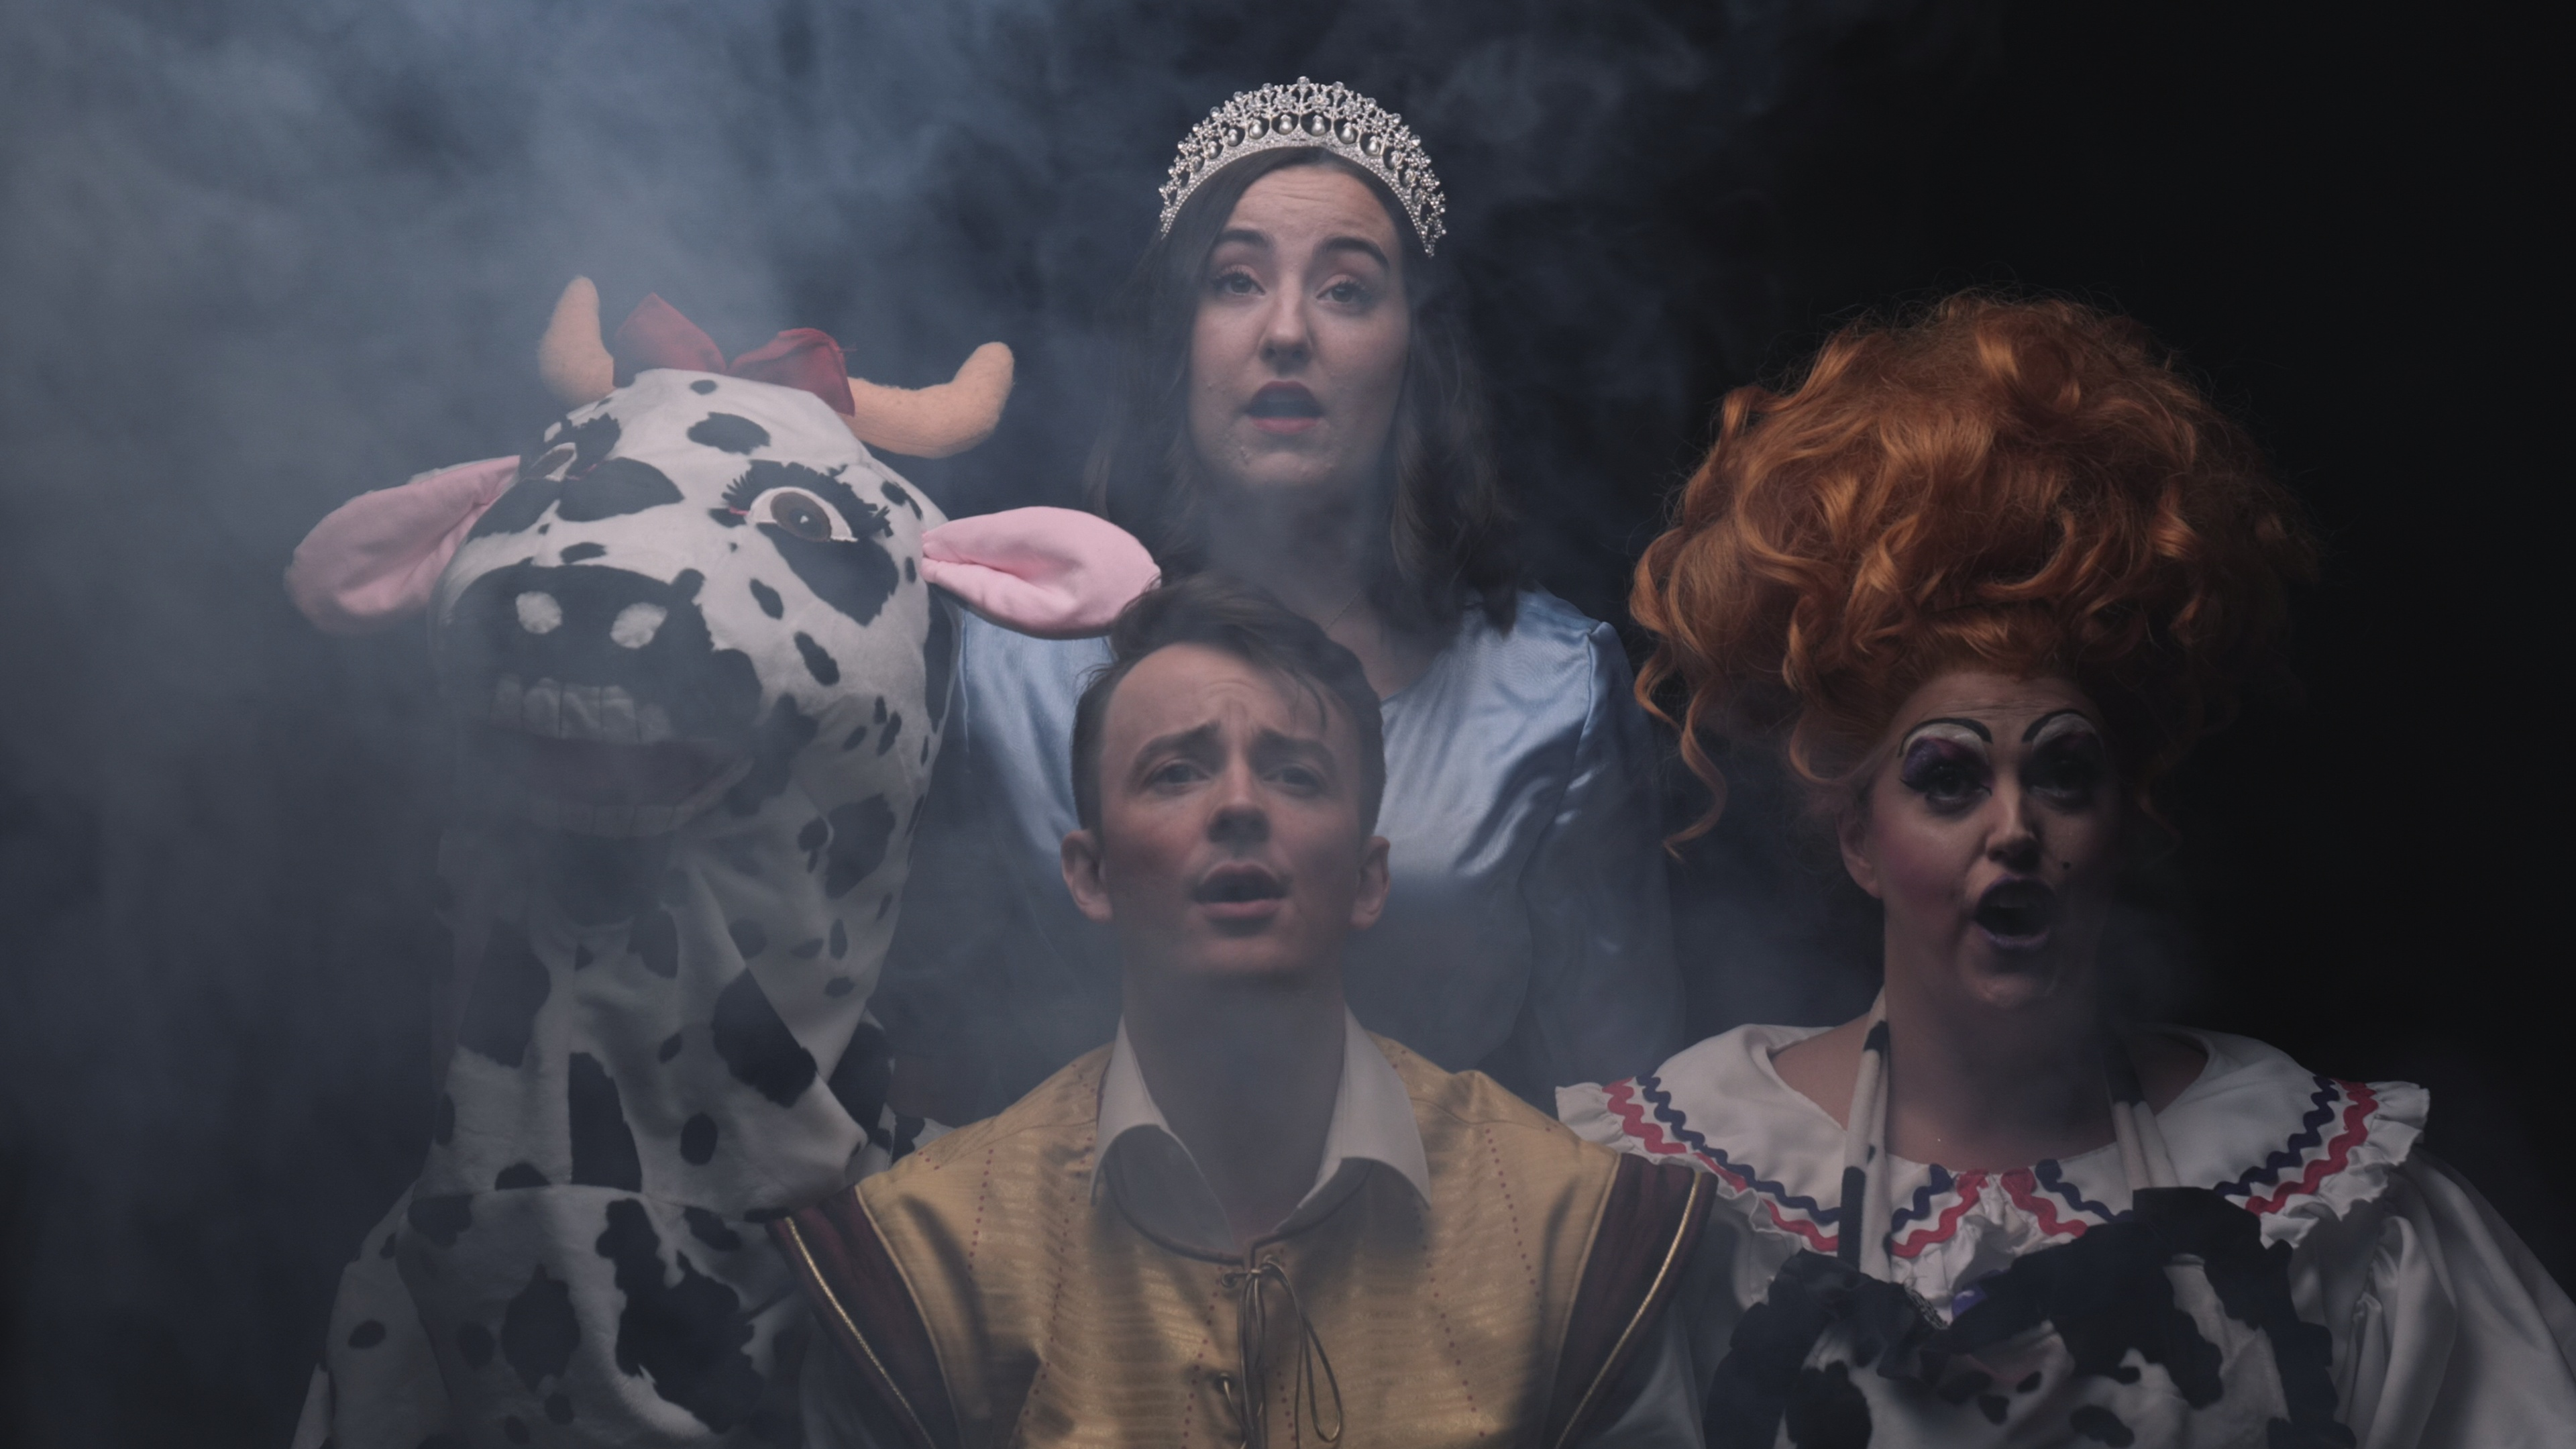 Peterhead Panto Group parodies Queen's Bohemian Rhapsody.